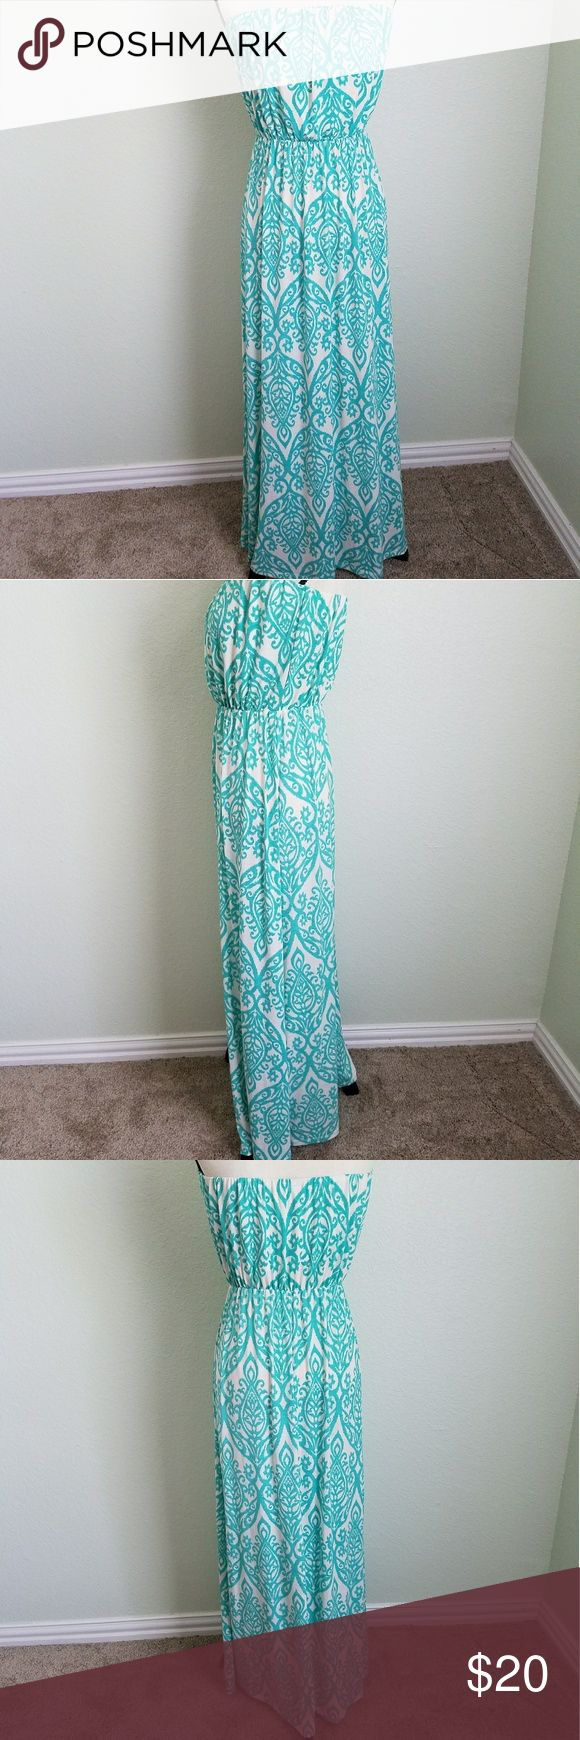 {Fashionomics} Strapless Maxi Dress Size Large Length - 53 inches  Chest - 4 inches (measured flat) Photos are the description of this article.  Any flaws will be pointed out and noted.  Otherwise this article is in excellent condition. Dresses Strapless